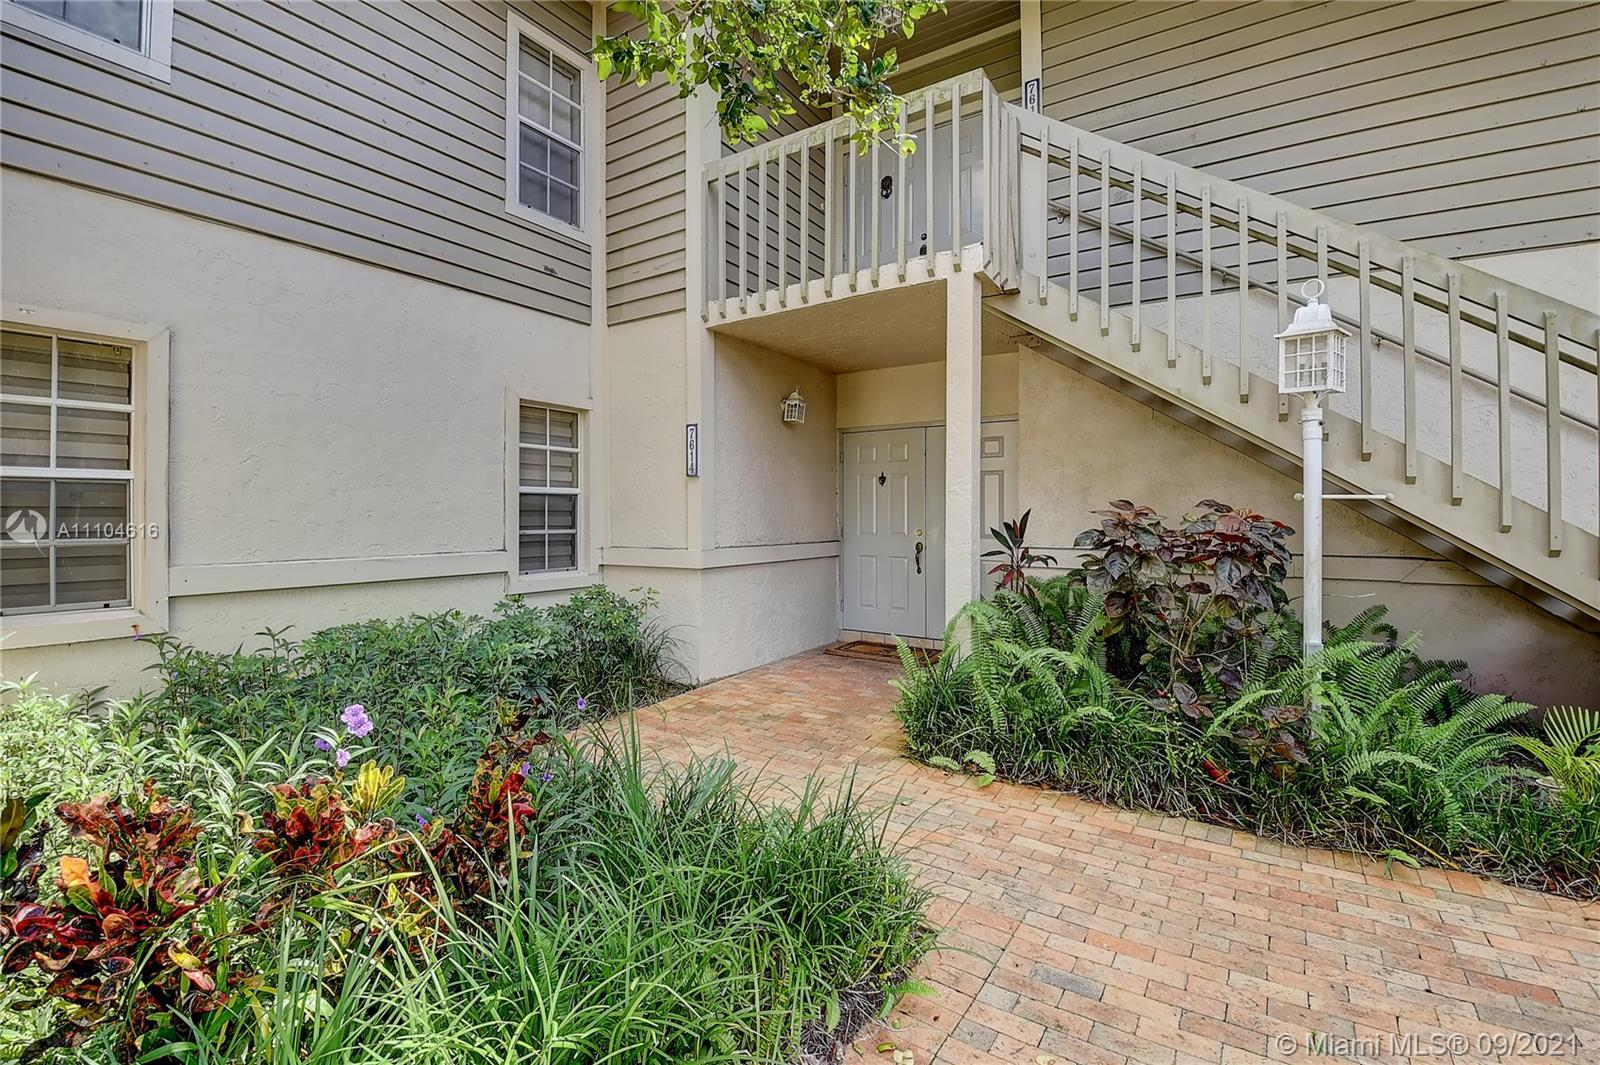 Lovely 2 bedroom/2 bath Cayman model on the first floor in Southwinds at Boca Pointe.  Panoramic gol